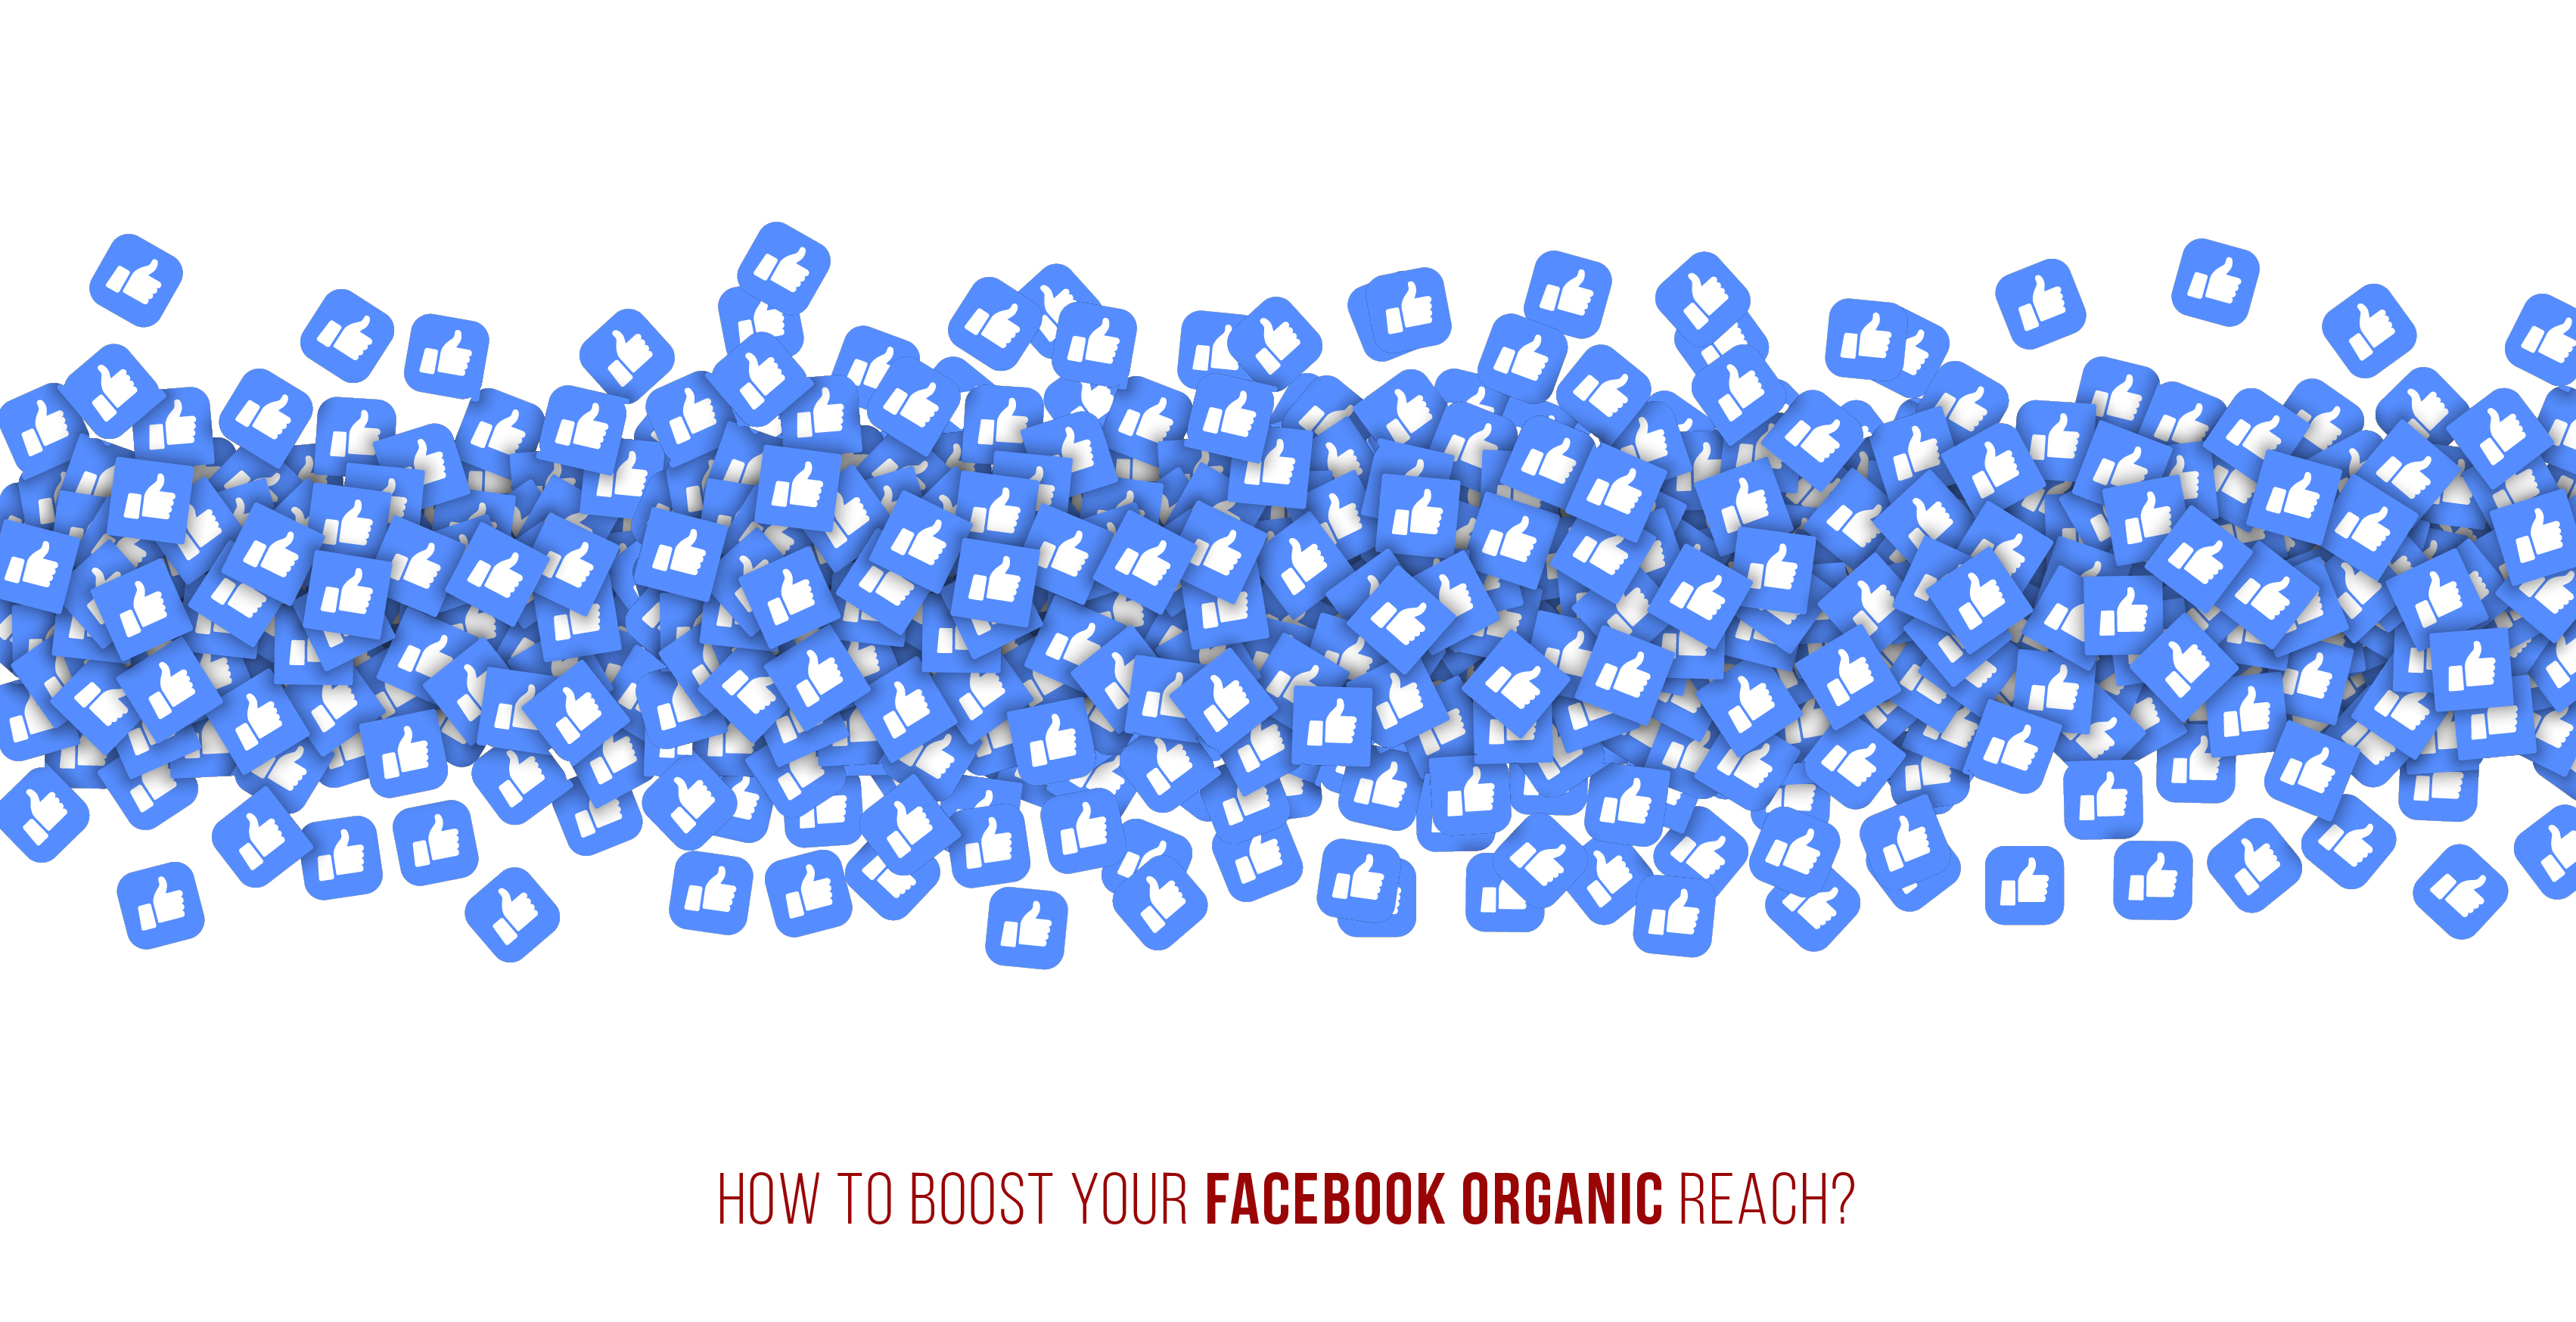 How to boost your Facebook organic reach?